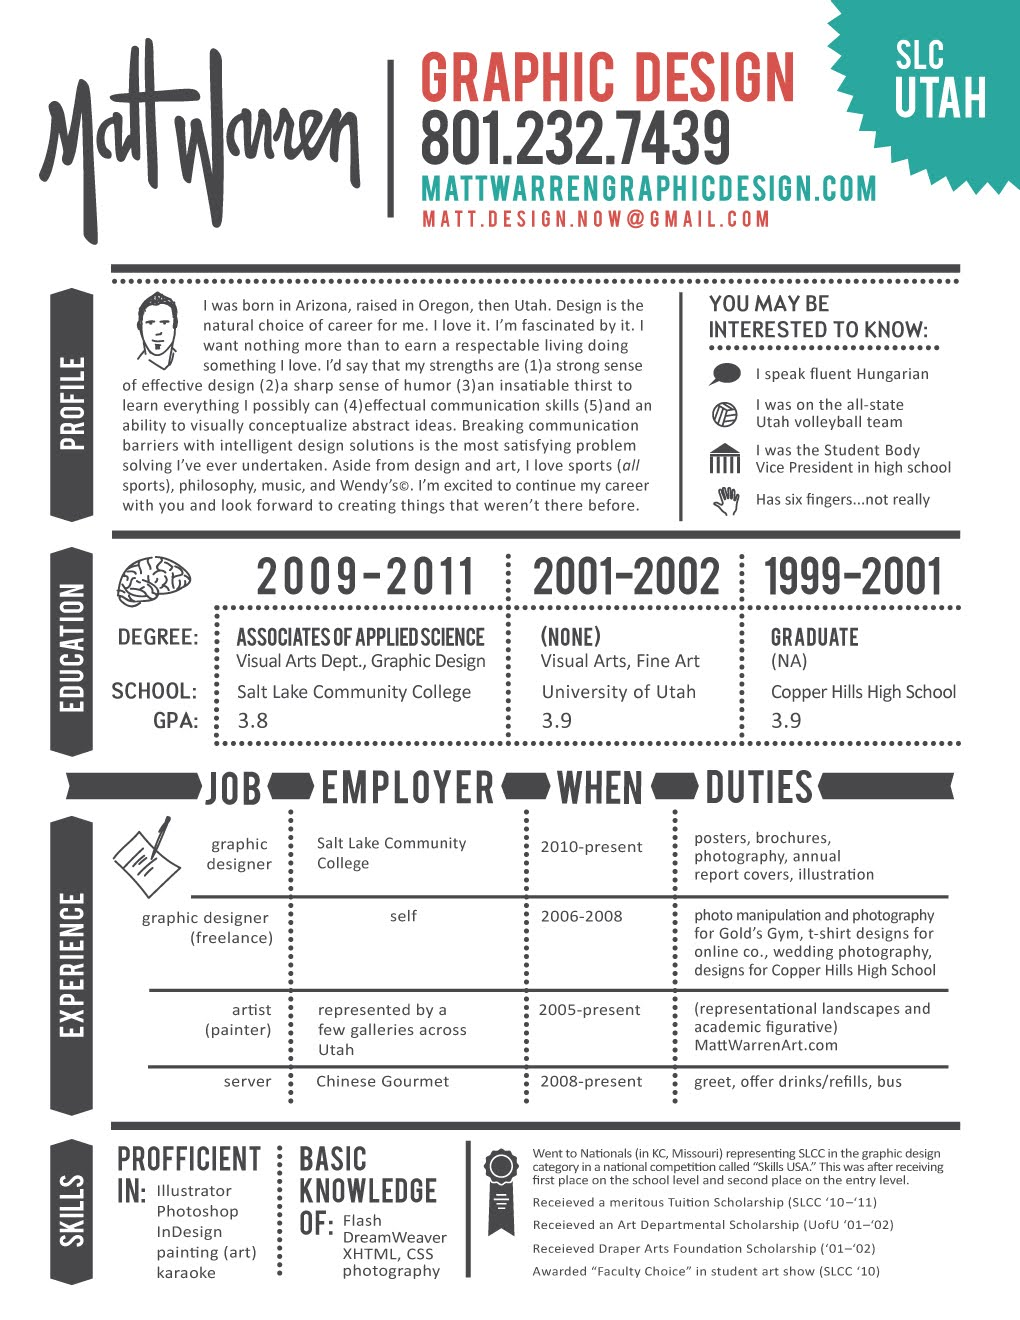 Opposenewapstandardsus  Marvellous  Images About Hire Me On Pinterest  Graphic Designer Resume  With Exciting  Images About Hire Me On Pinterest  Graphic Designer Resume Resume Design And Resume With Delectable Ceo Resume Also Resume Images In Addition Legal Assistant Resume And Project Manager Resume Sample As Well As Basic Resume Templates Additionally Investment Banking Resume From Pinterestcom With Opposenewapstandardsus  Exciting  Images About Hire Me On Pinterest  Graphic Designer Resume  With Delectable  Images About Hire Me On Pinterest  Graphic Designer Resume Resume Design And Resume And Marvellous Ceo Resume Also Resume Images In Addition Legal Assistant Resume From Pinterestcom